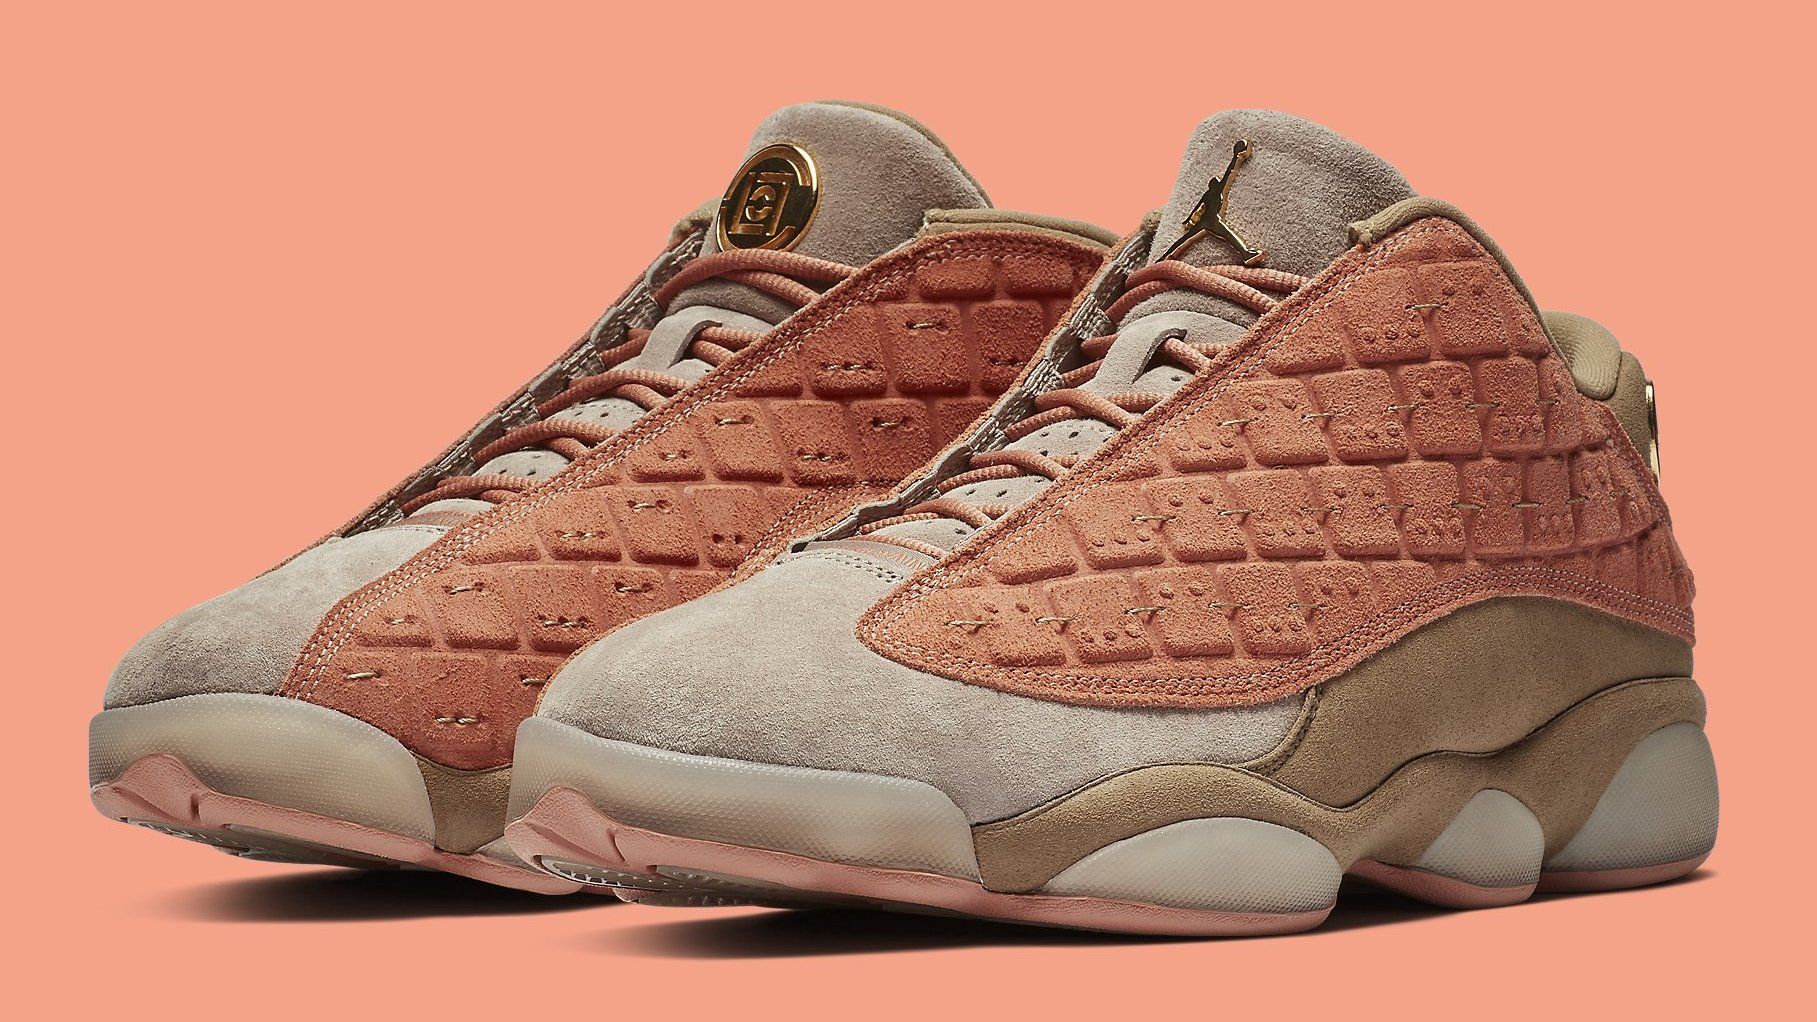 4b69e21011f7 New Release Info for the Clot x Air Jordan 13 Low.